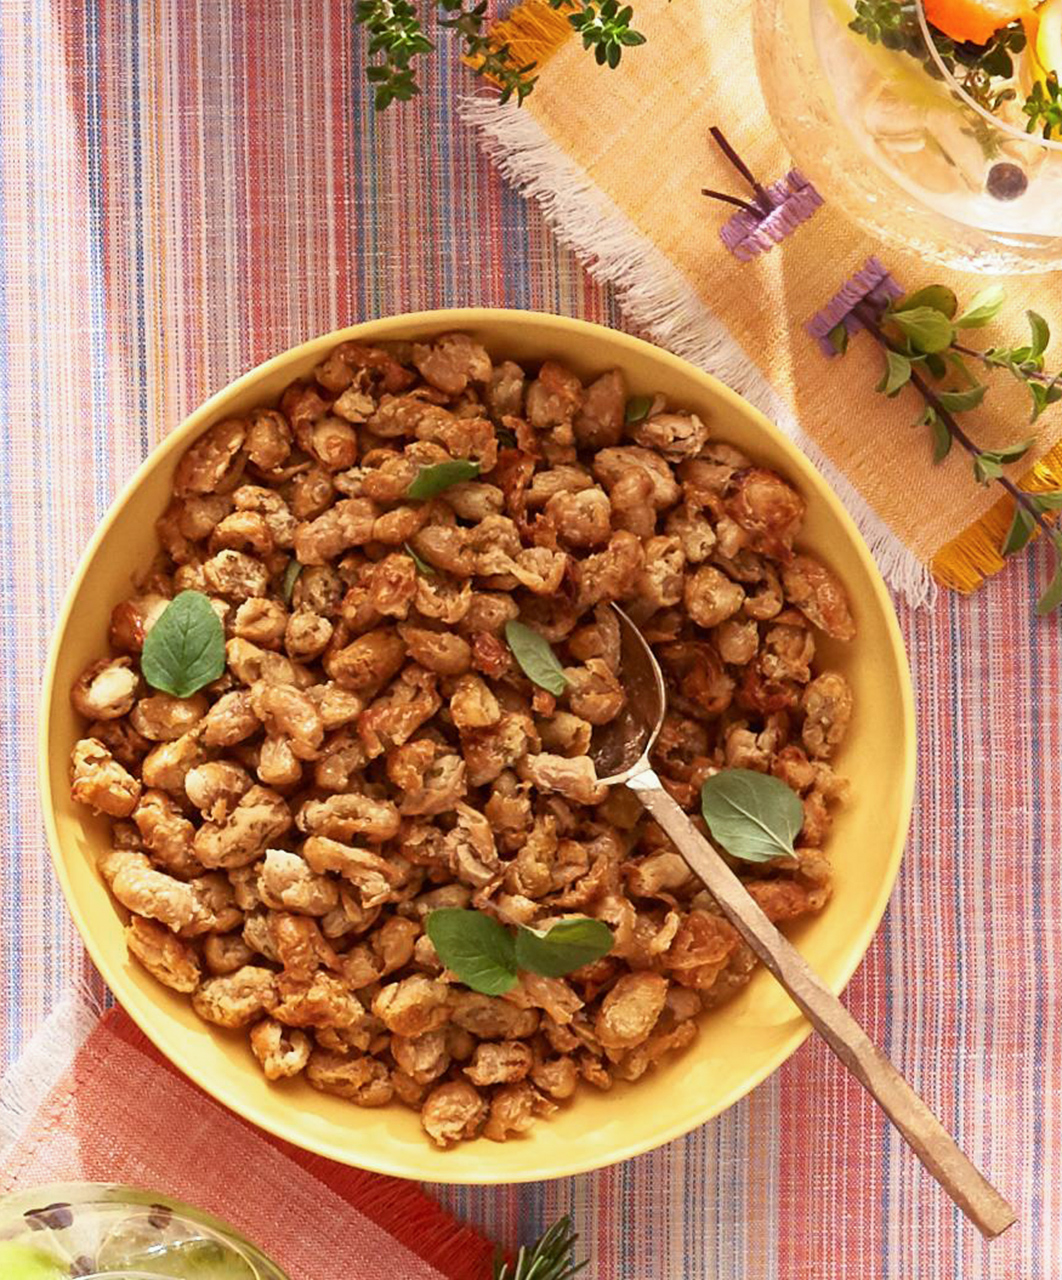 Crispy White Beans with Garlic and Herbs